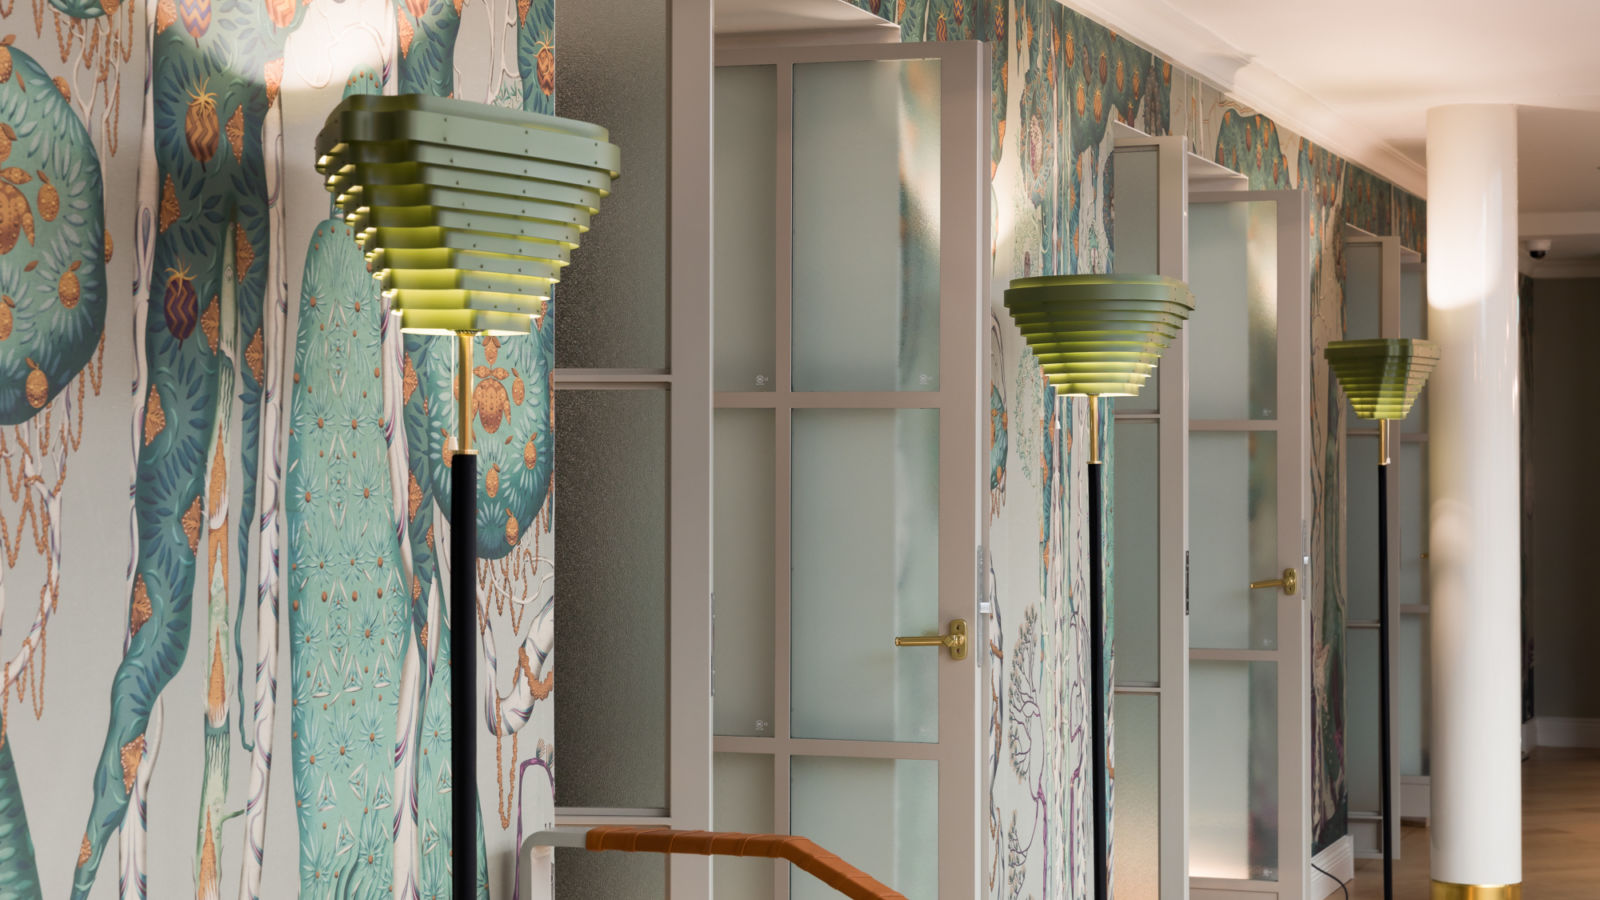 Alvar Aalto A805: Artek's iconic lamp shines in a new colour at Hotel St. George Helsinki